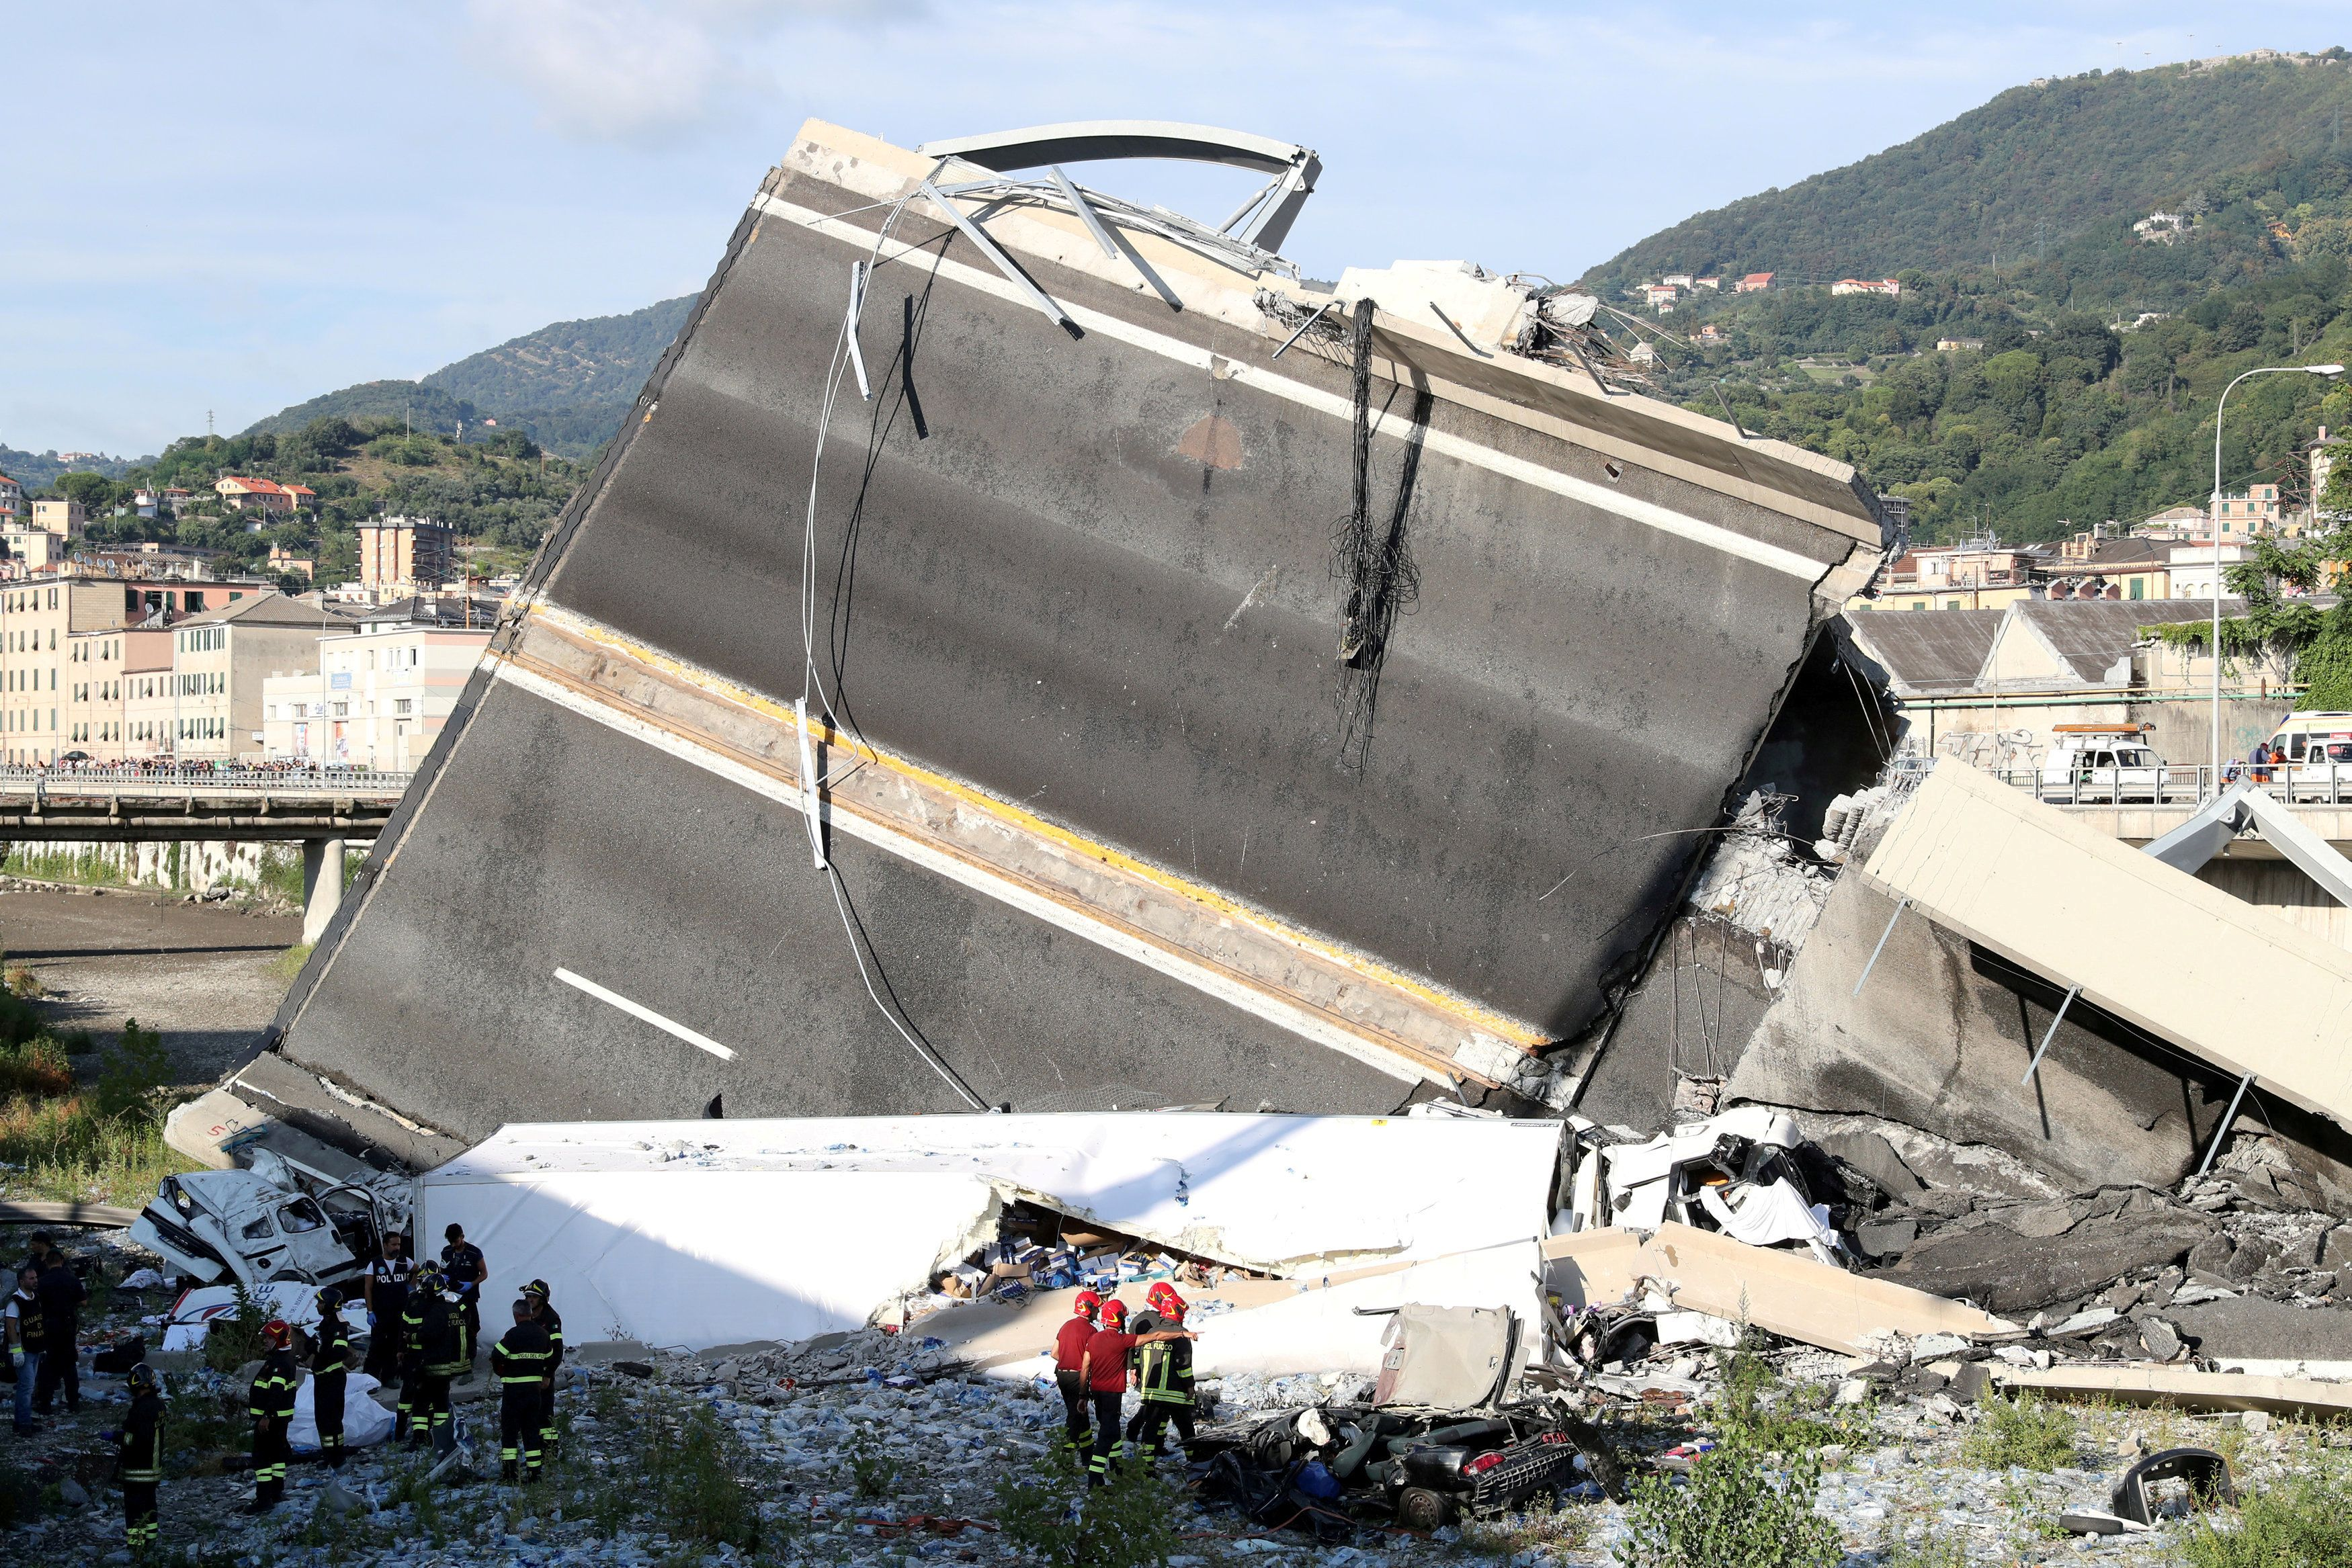 Firefighters and rescue workers stand next to a part of the motorway, at the collapsed Morandi Bridge site in the port city of Genoa, Italy August 14, 2018.  REUTERS/Stefano Rellandini      TPX IMAGES OF THE DAY